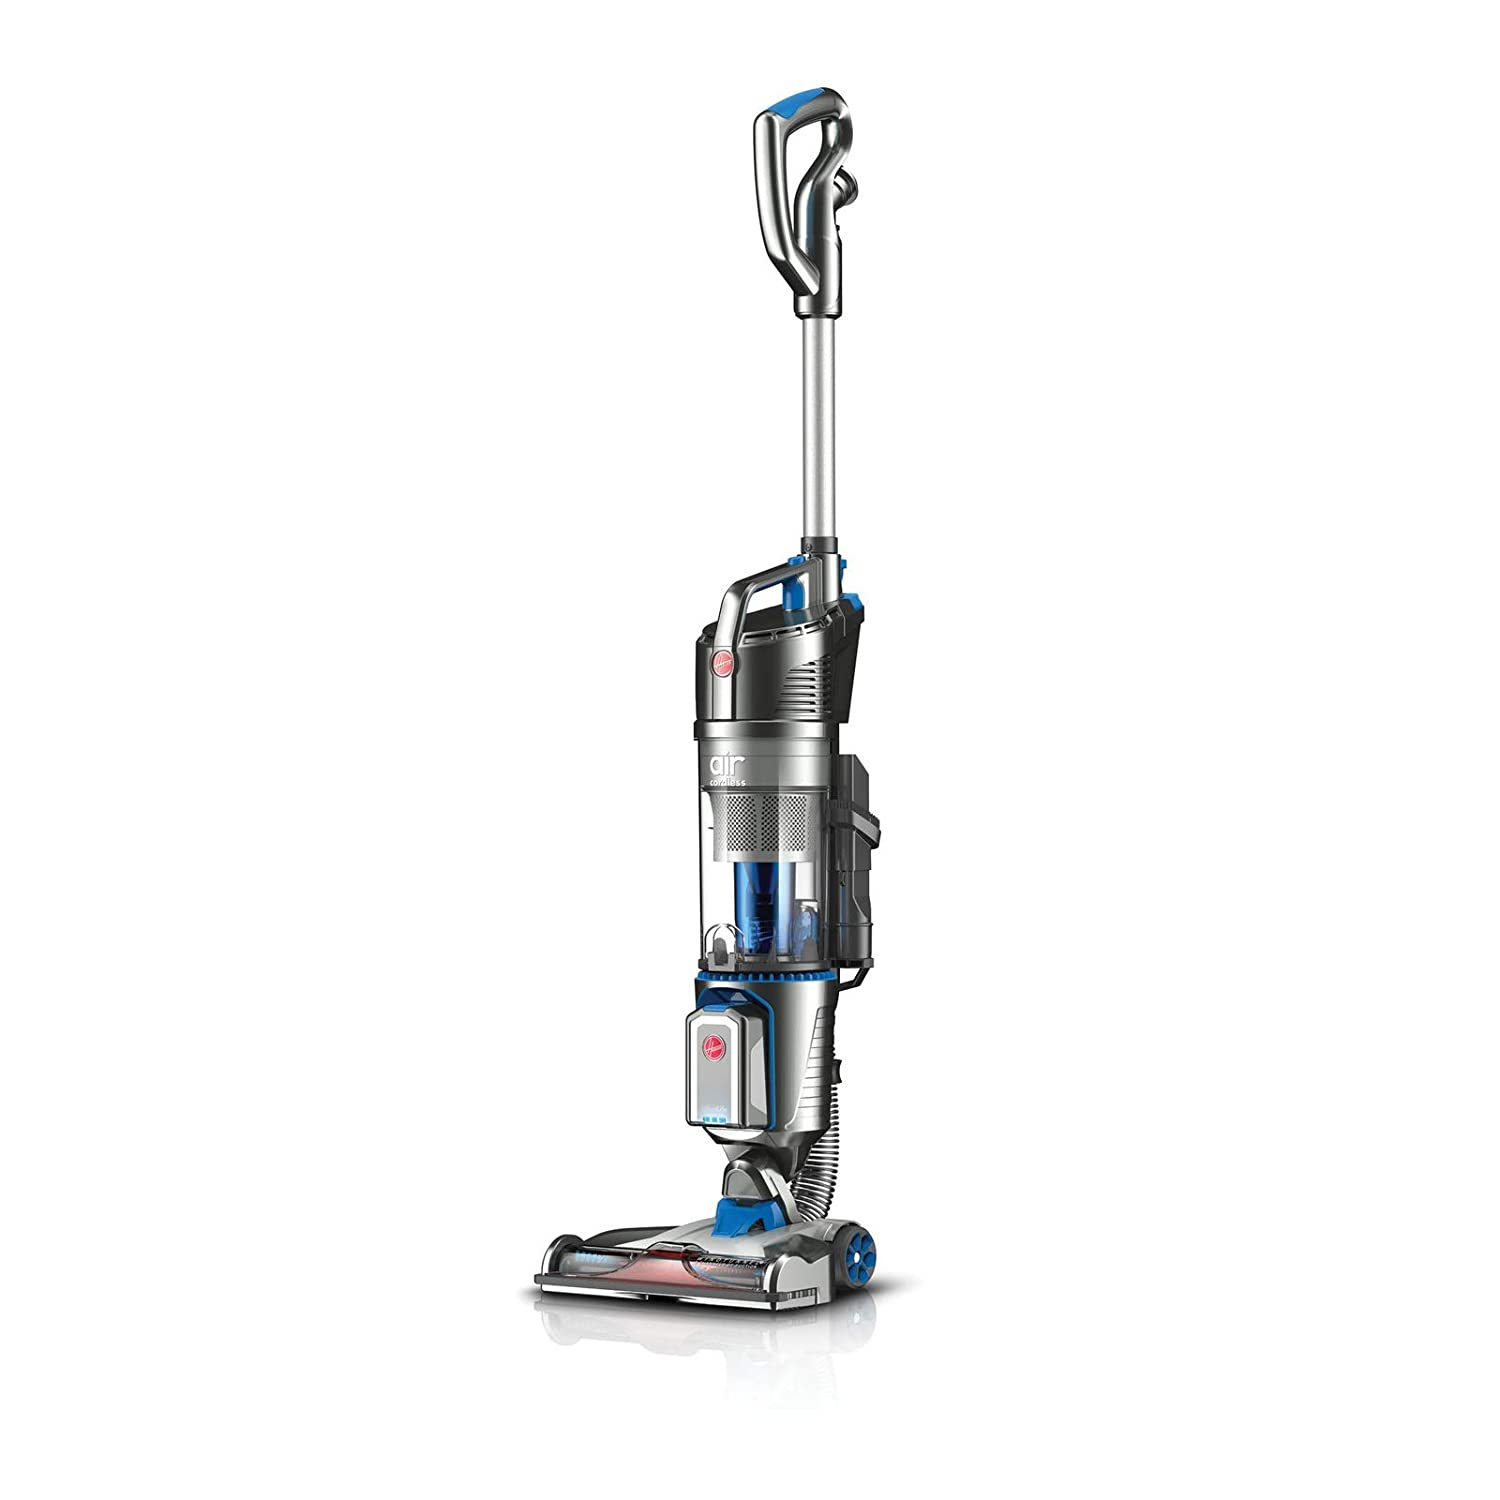 Hoover Air Cordless Upright Vacuum, Blue/Grey BH50199RPC